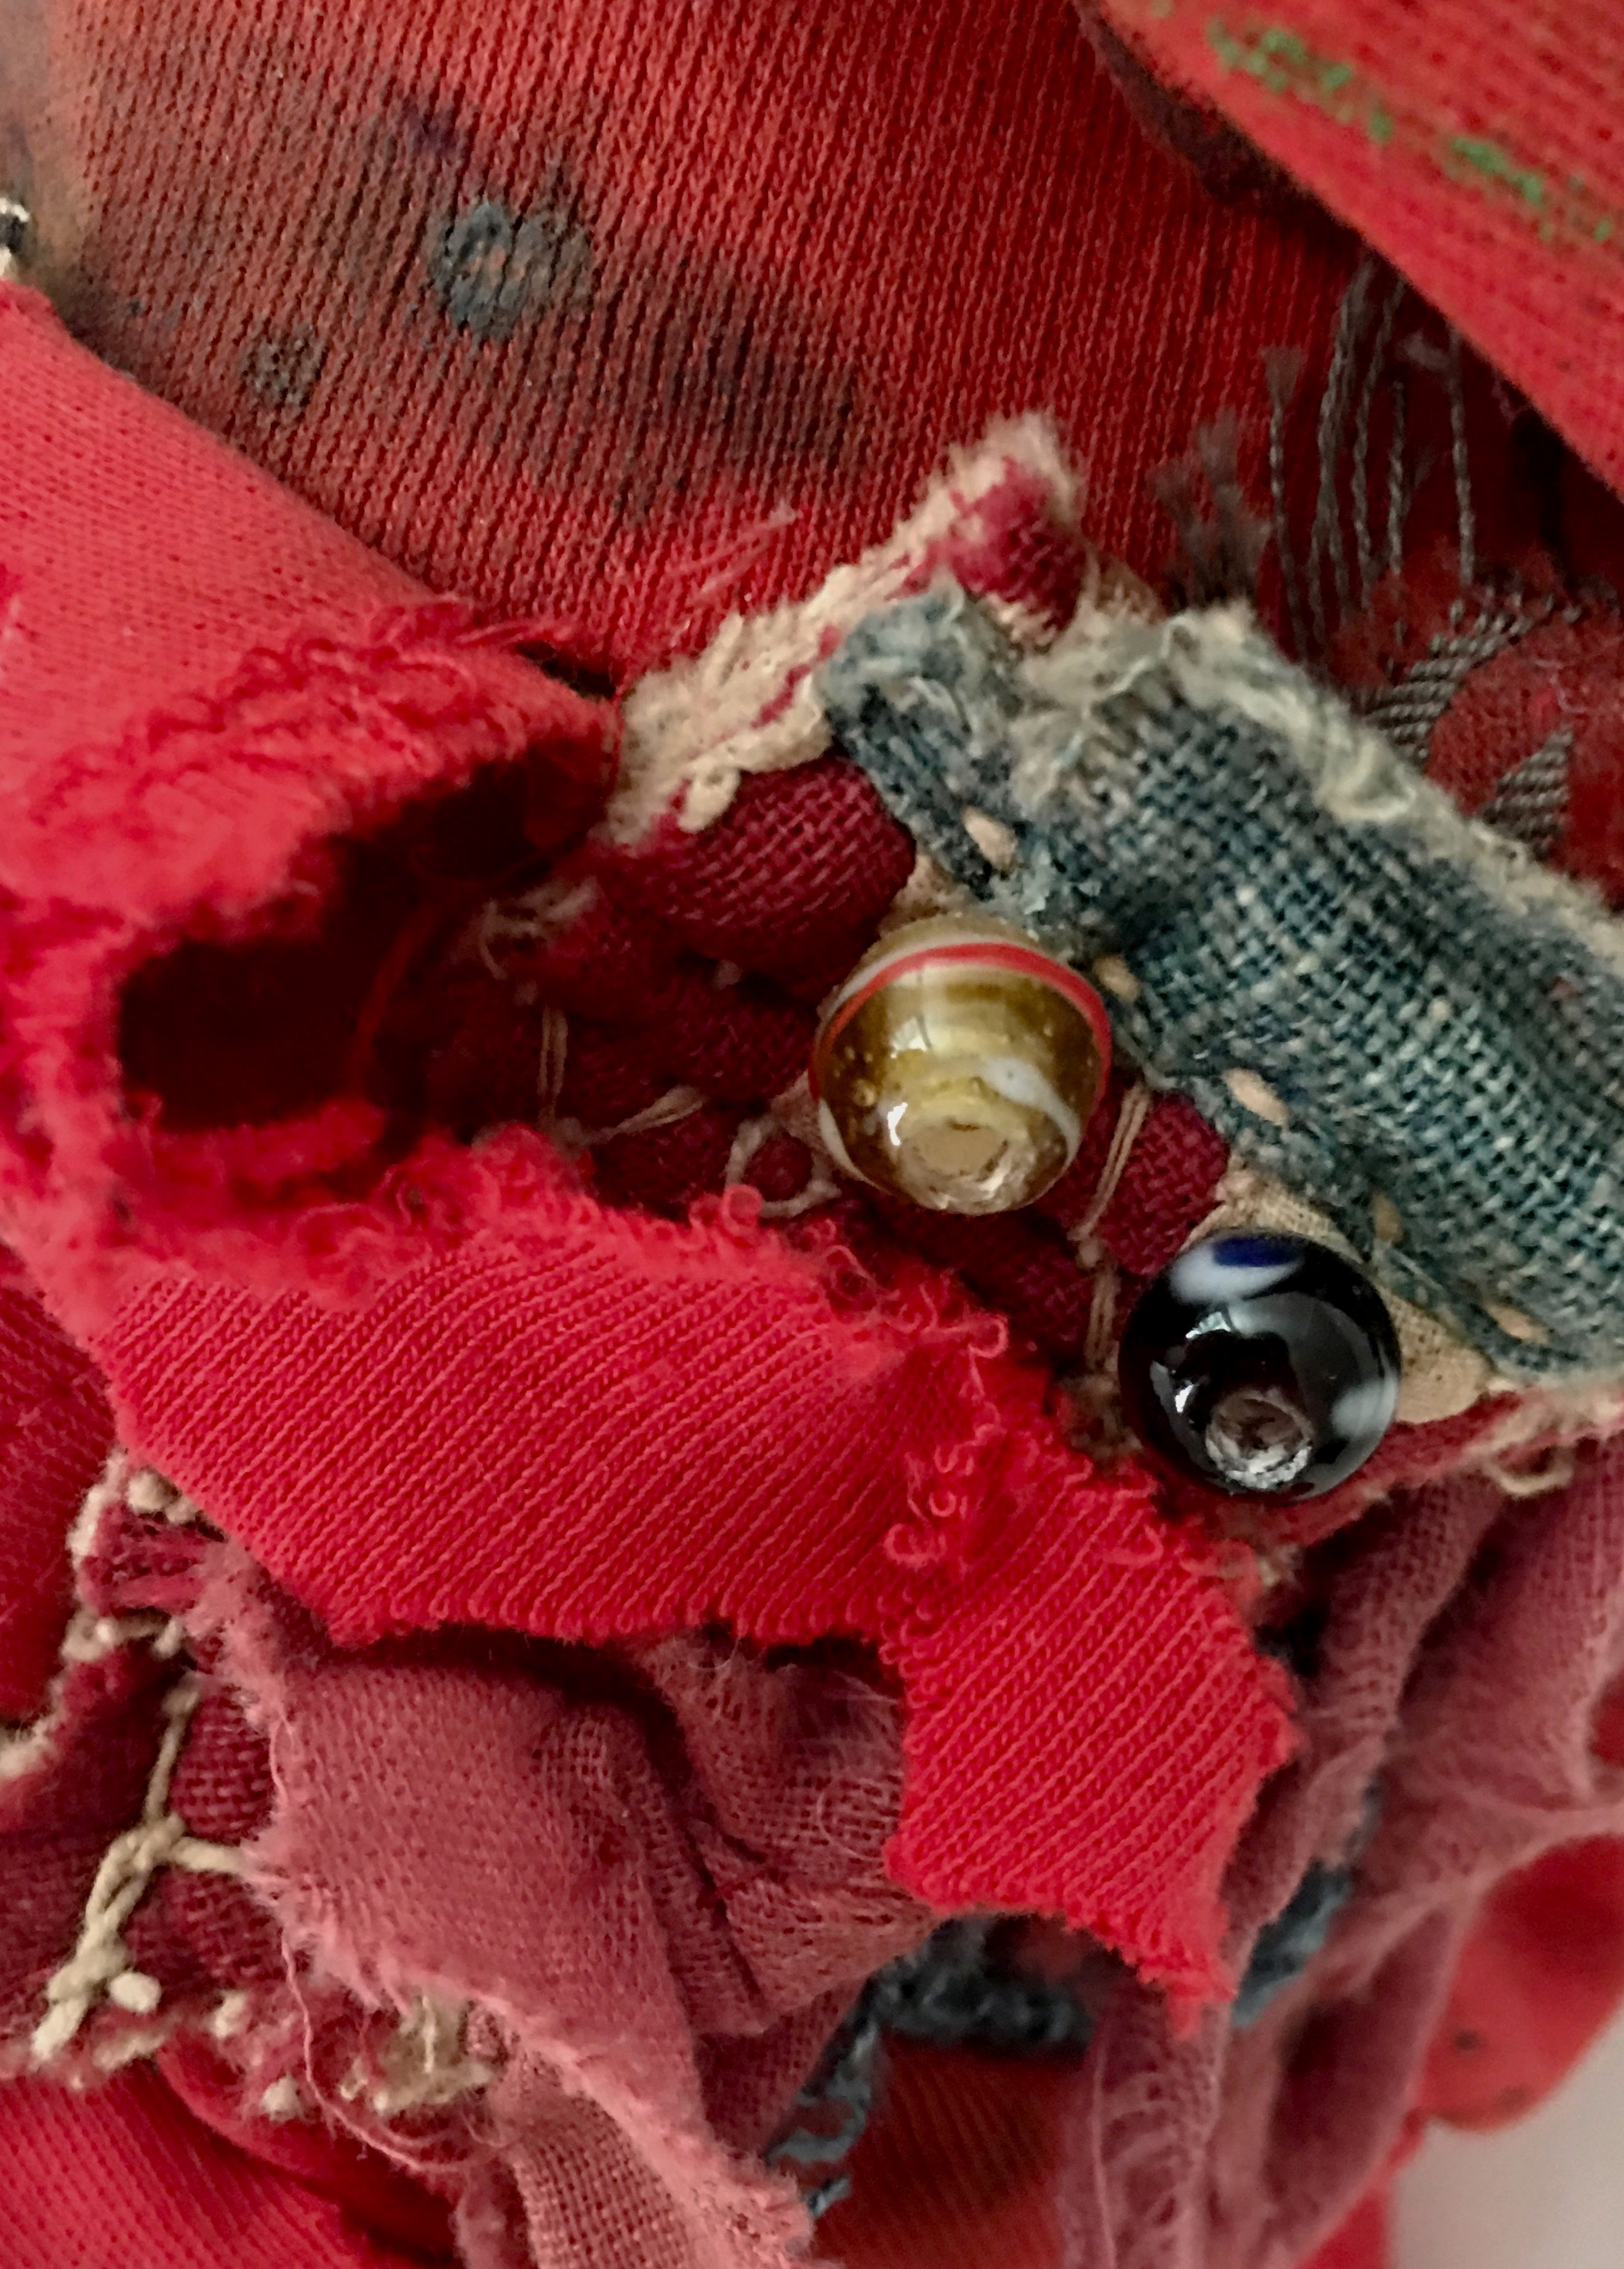 "Red Rag Shaker with Amulets (Detail)   Hand-painted red textile, antique Indian textile, buttons, threads, recycled textiles, and acrylic on industrial cardboard tube with hidden power amulets  14 x 8"" round  2015"